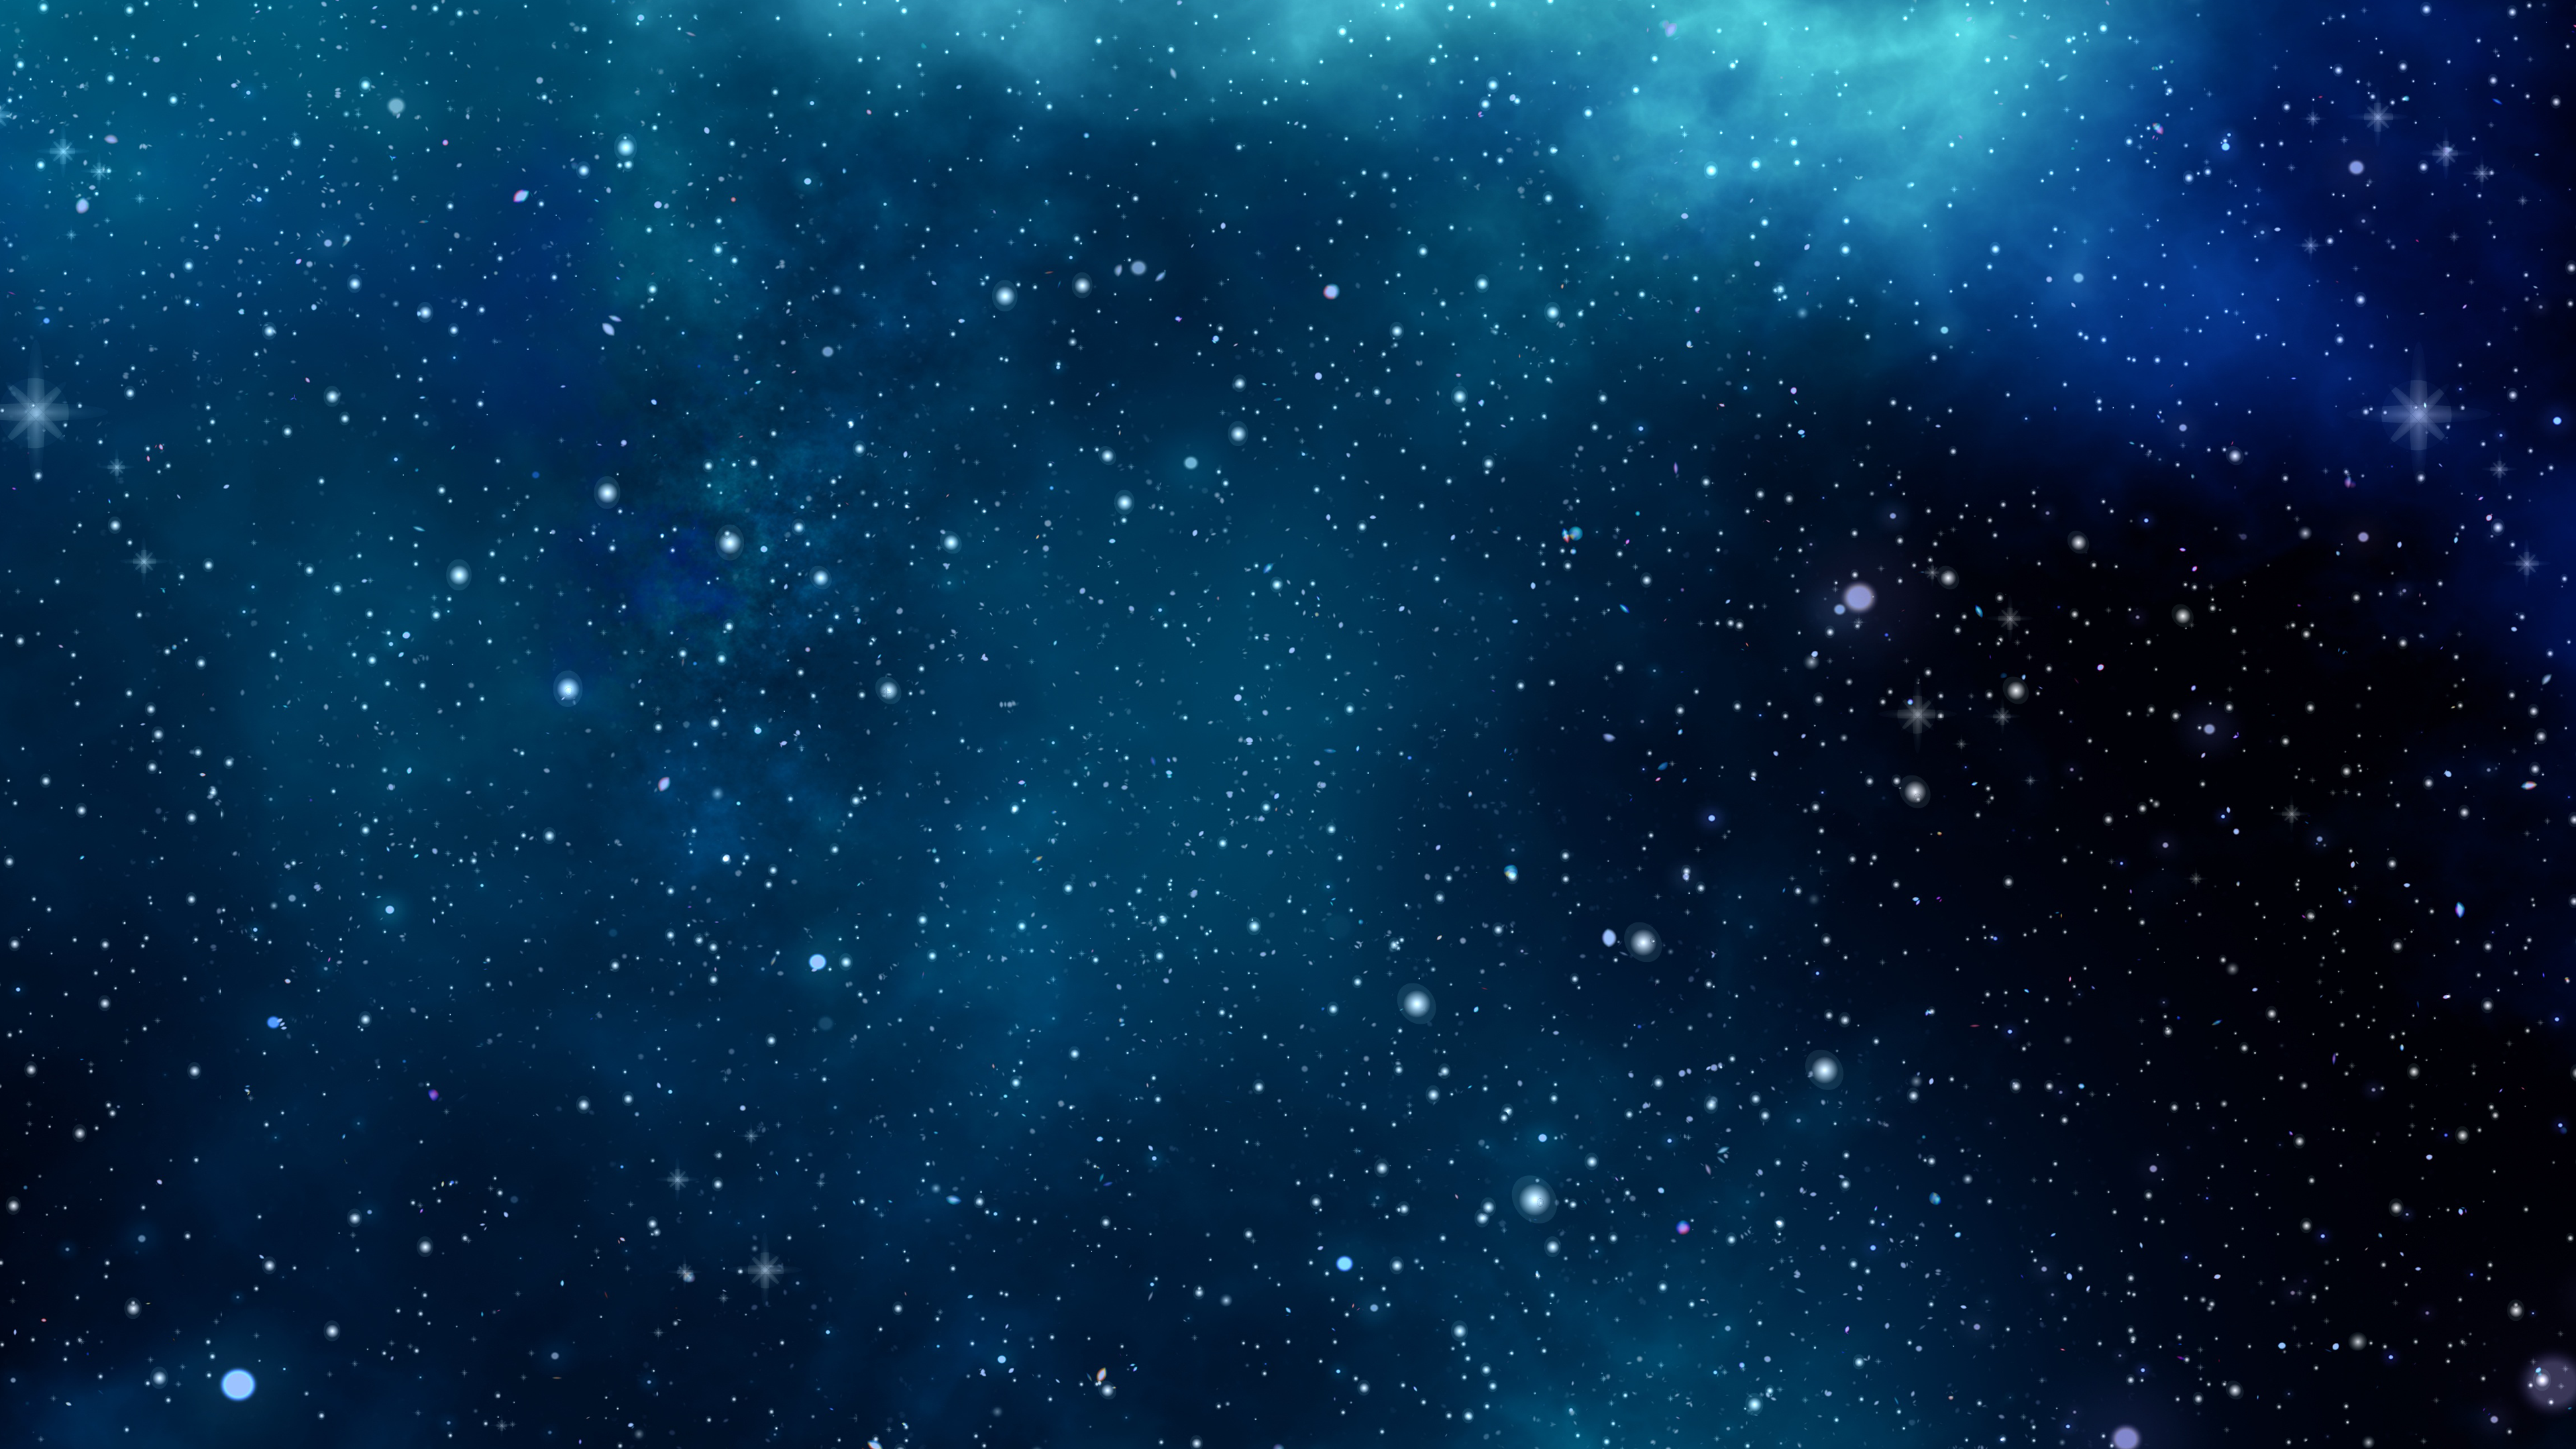 Blue Space 4K Wallpaper Download